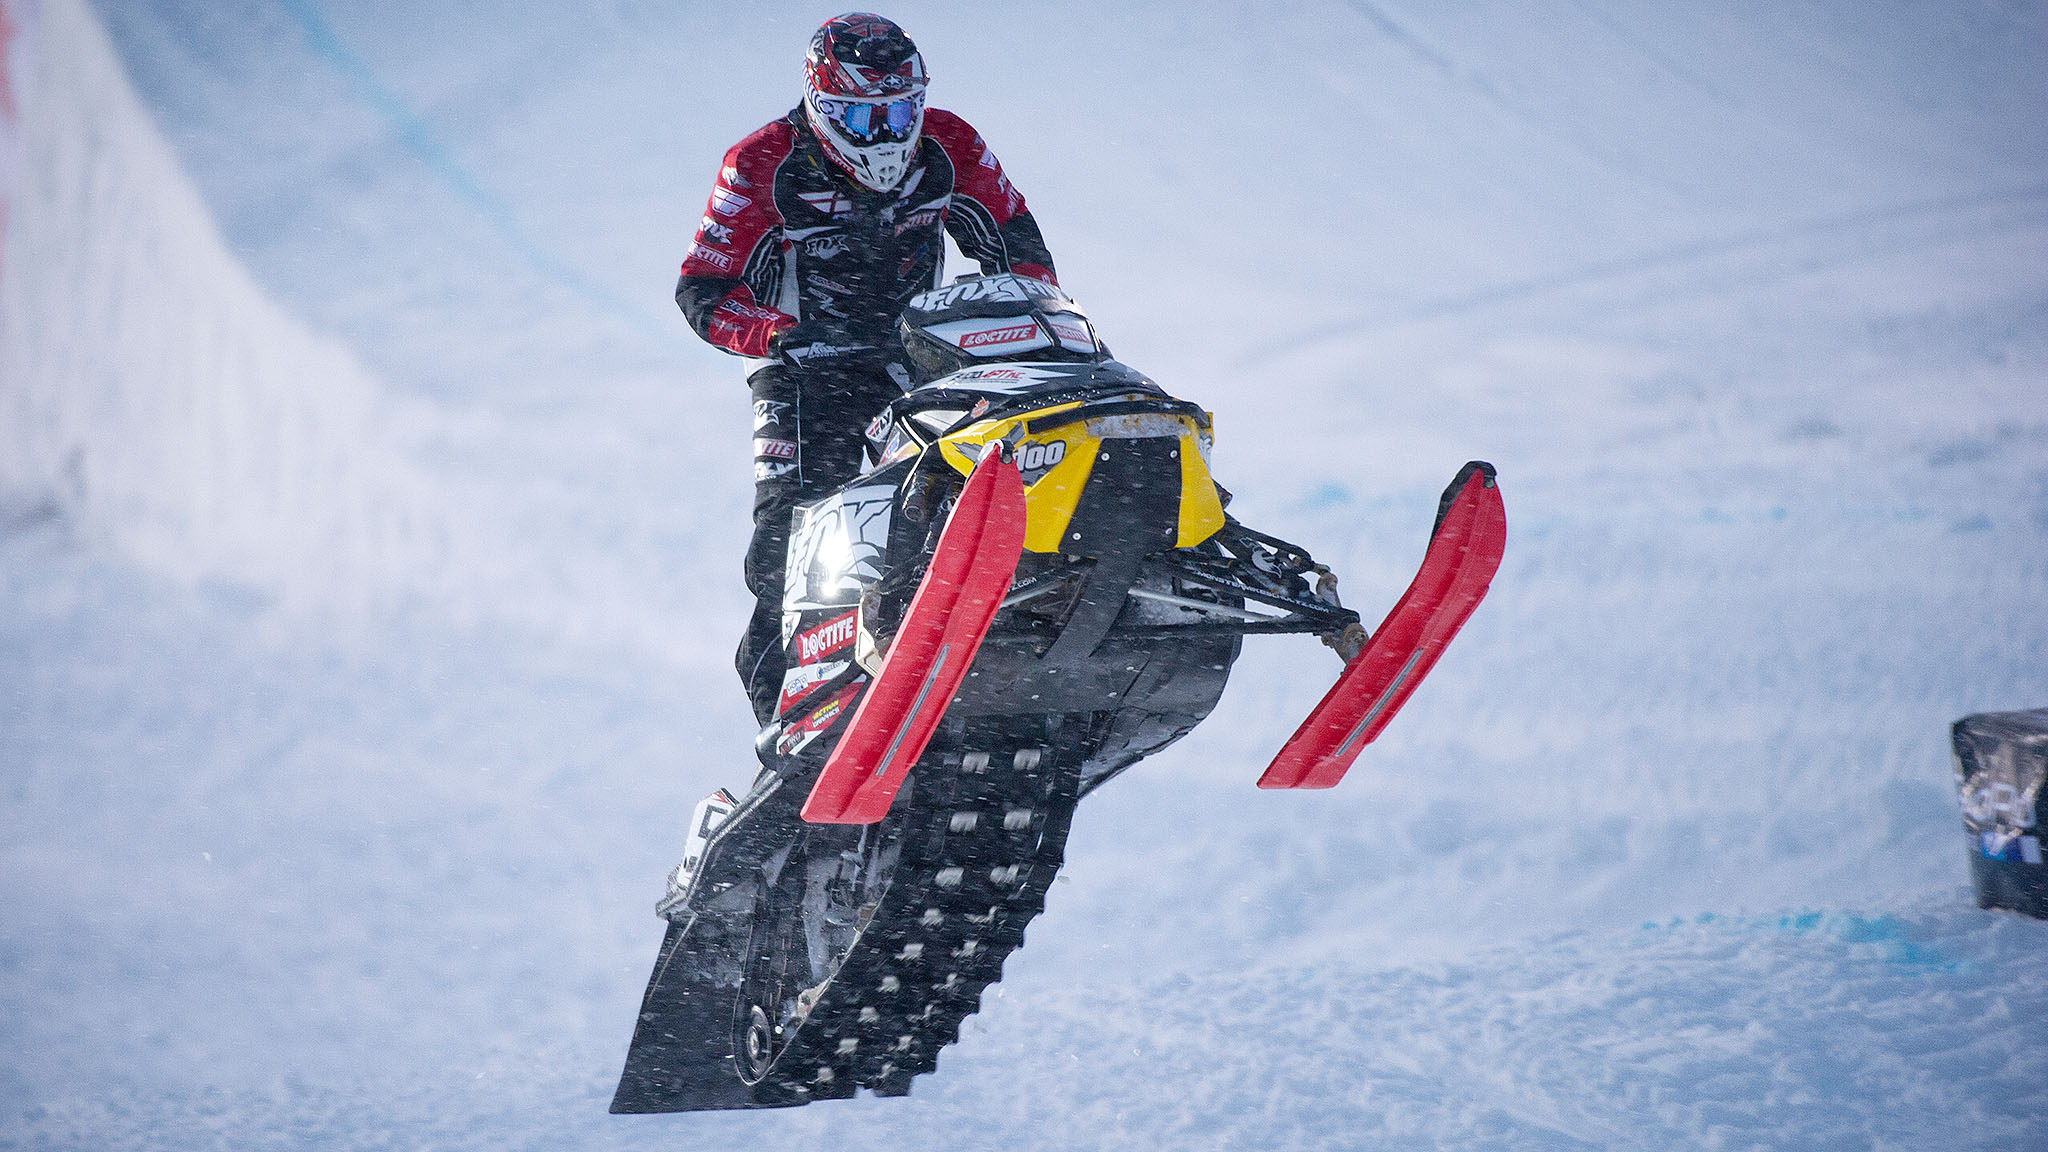 Mike Schultz didn't just return to snowmobiling. No, he excelled at it even after losing a leg.